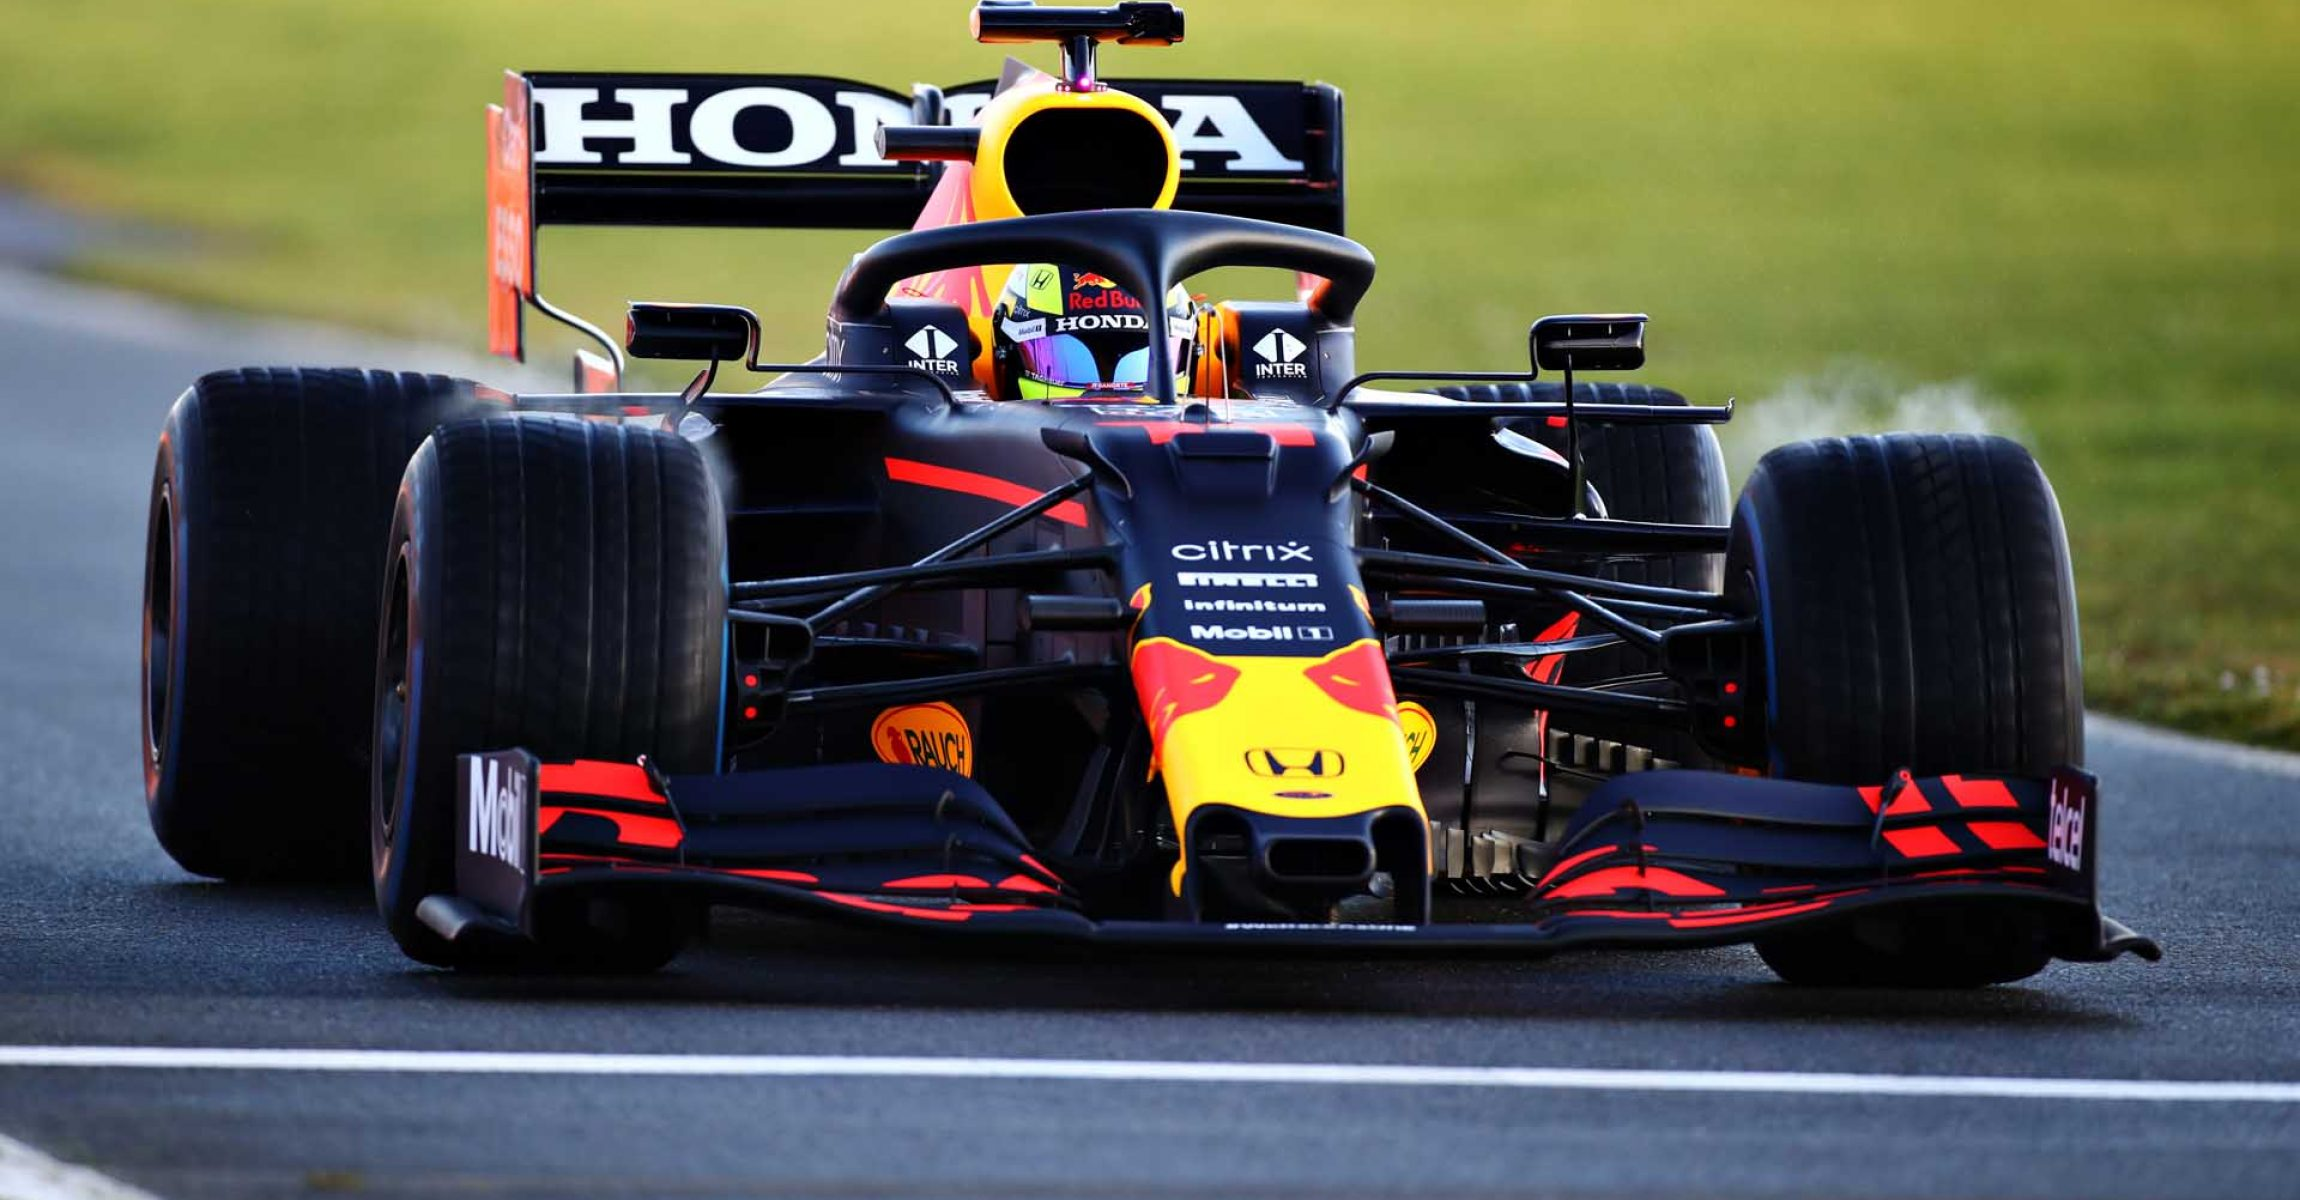 NORTHAMPTON, ENGLAND - FEBRUARY 22: Sergio Perez of Mexico driving the (11) Red Bull Racing RB15 Honda at Silverstone on February 22, 2021 in Northampton, England. (Photo by Bryn Lennon/Getty Images for Red Bull Racing)